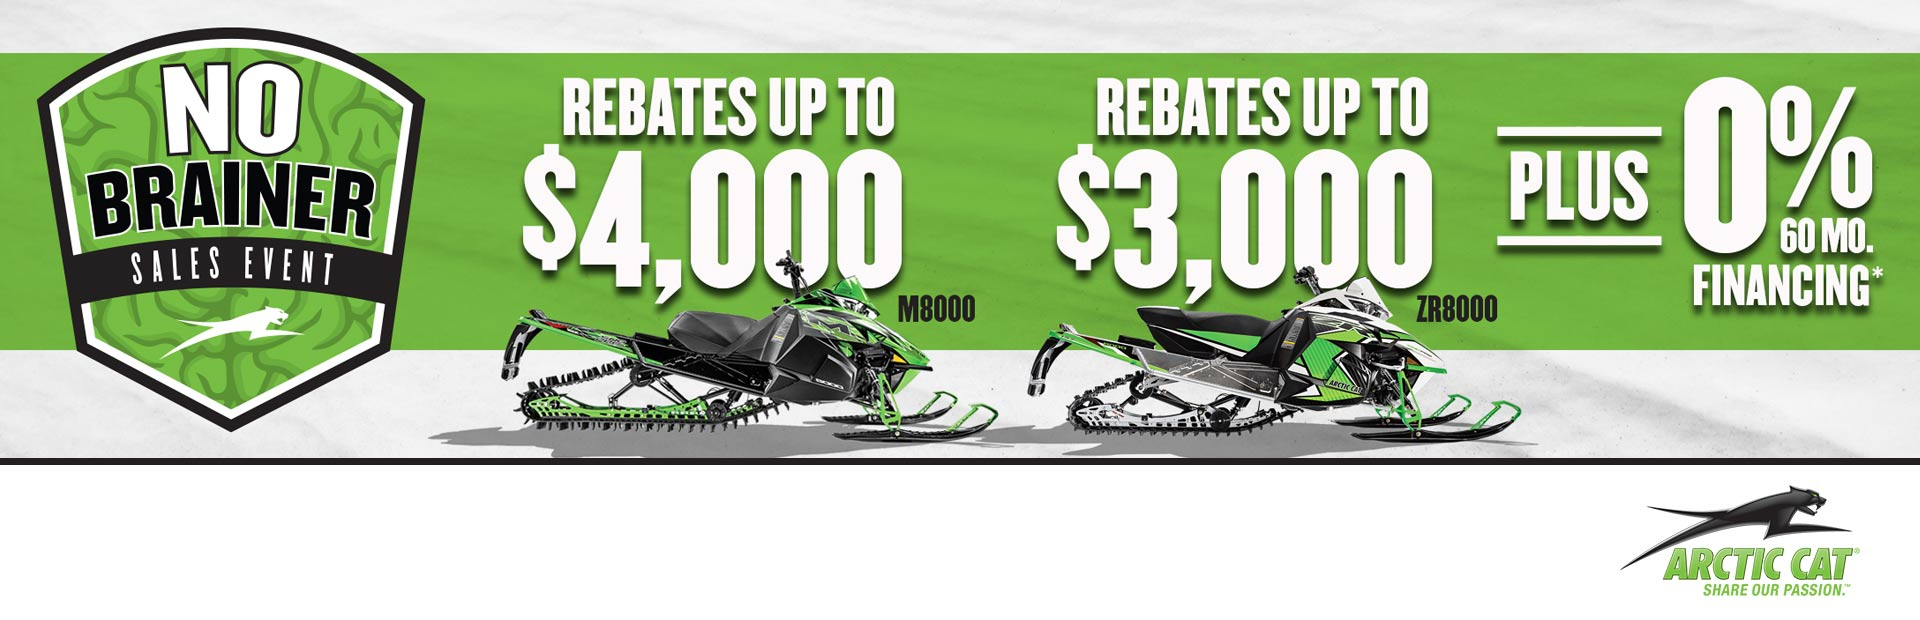 Arctic Cat: No Brainer Sales Event